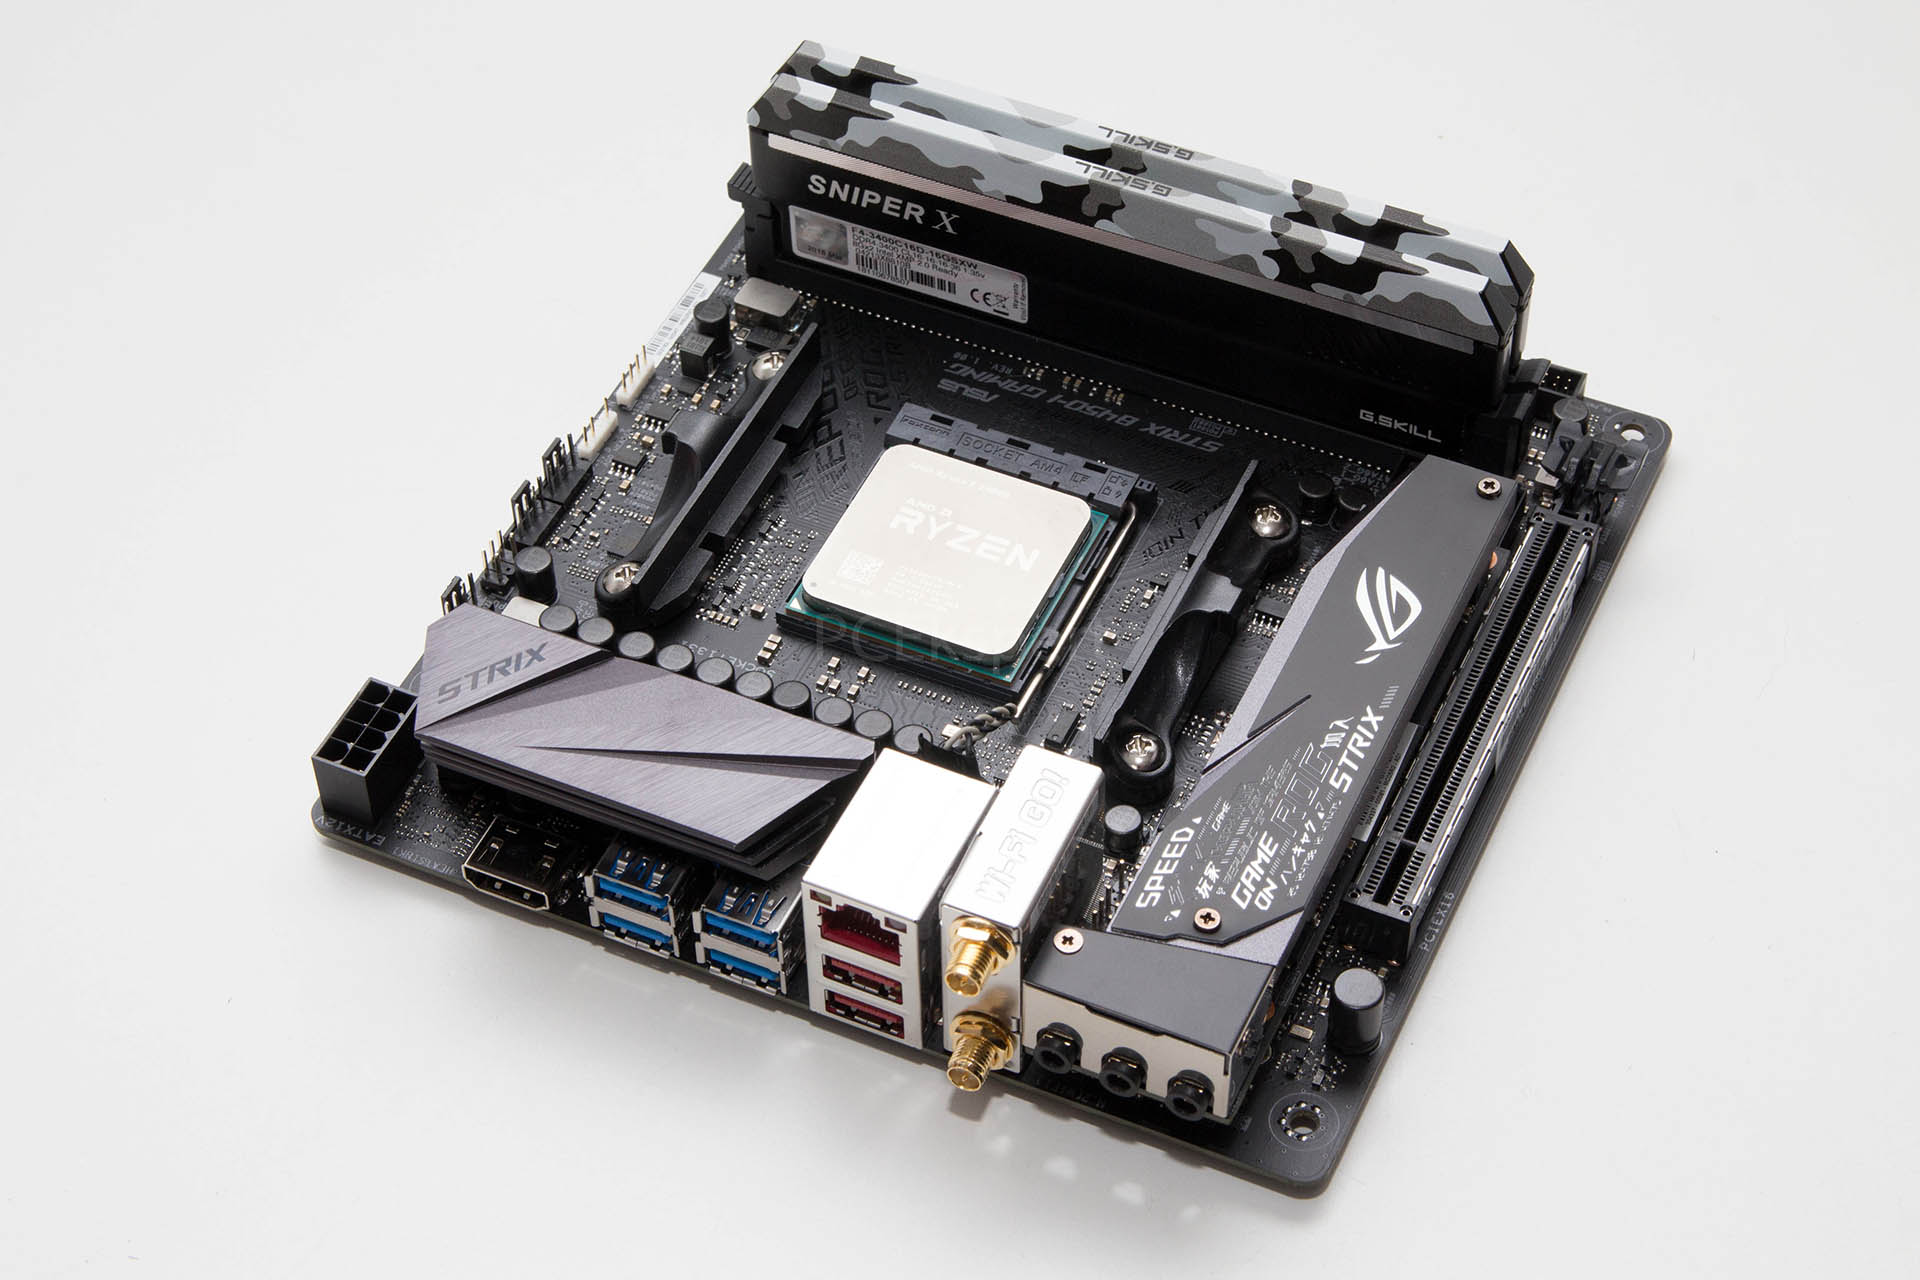 Brzi test – Asus ROG Strix B450-I Gaming